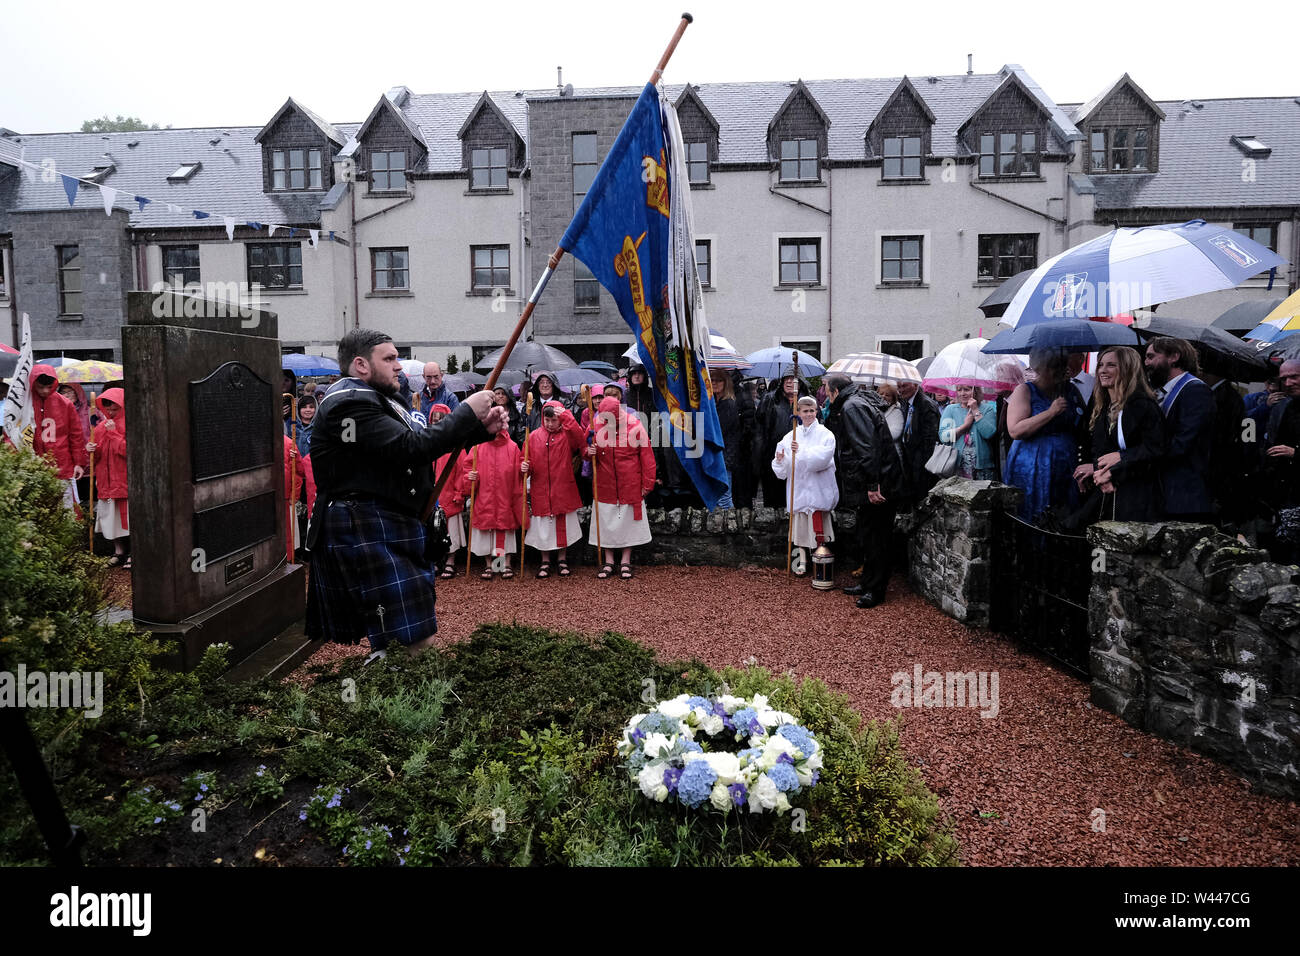 Innerleithen, UK. 19th July, 2019. St Ronans Cleikum Innerleithen Standard Bearer 2019, Ronan D Caine walks towards the war memorial at the Cleikum Ceremonies, Memorial Hall, Innerleithen. as part of St RonanÕs Games Week, Friday 19 July 2019 . Instituted in 1827, The Games are the oldest organised sports meeting in Scotland and are now part of a week long festival that incorporates many events for every age group. Central to the festivities are the Cleikum Ceremonies when the town's association with its Patron Saint, St. Ronan, is celebrated ( Credit: Rob Gray/Alamy Live News - Stock Image